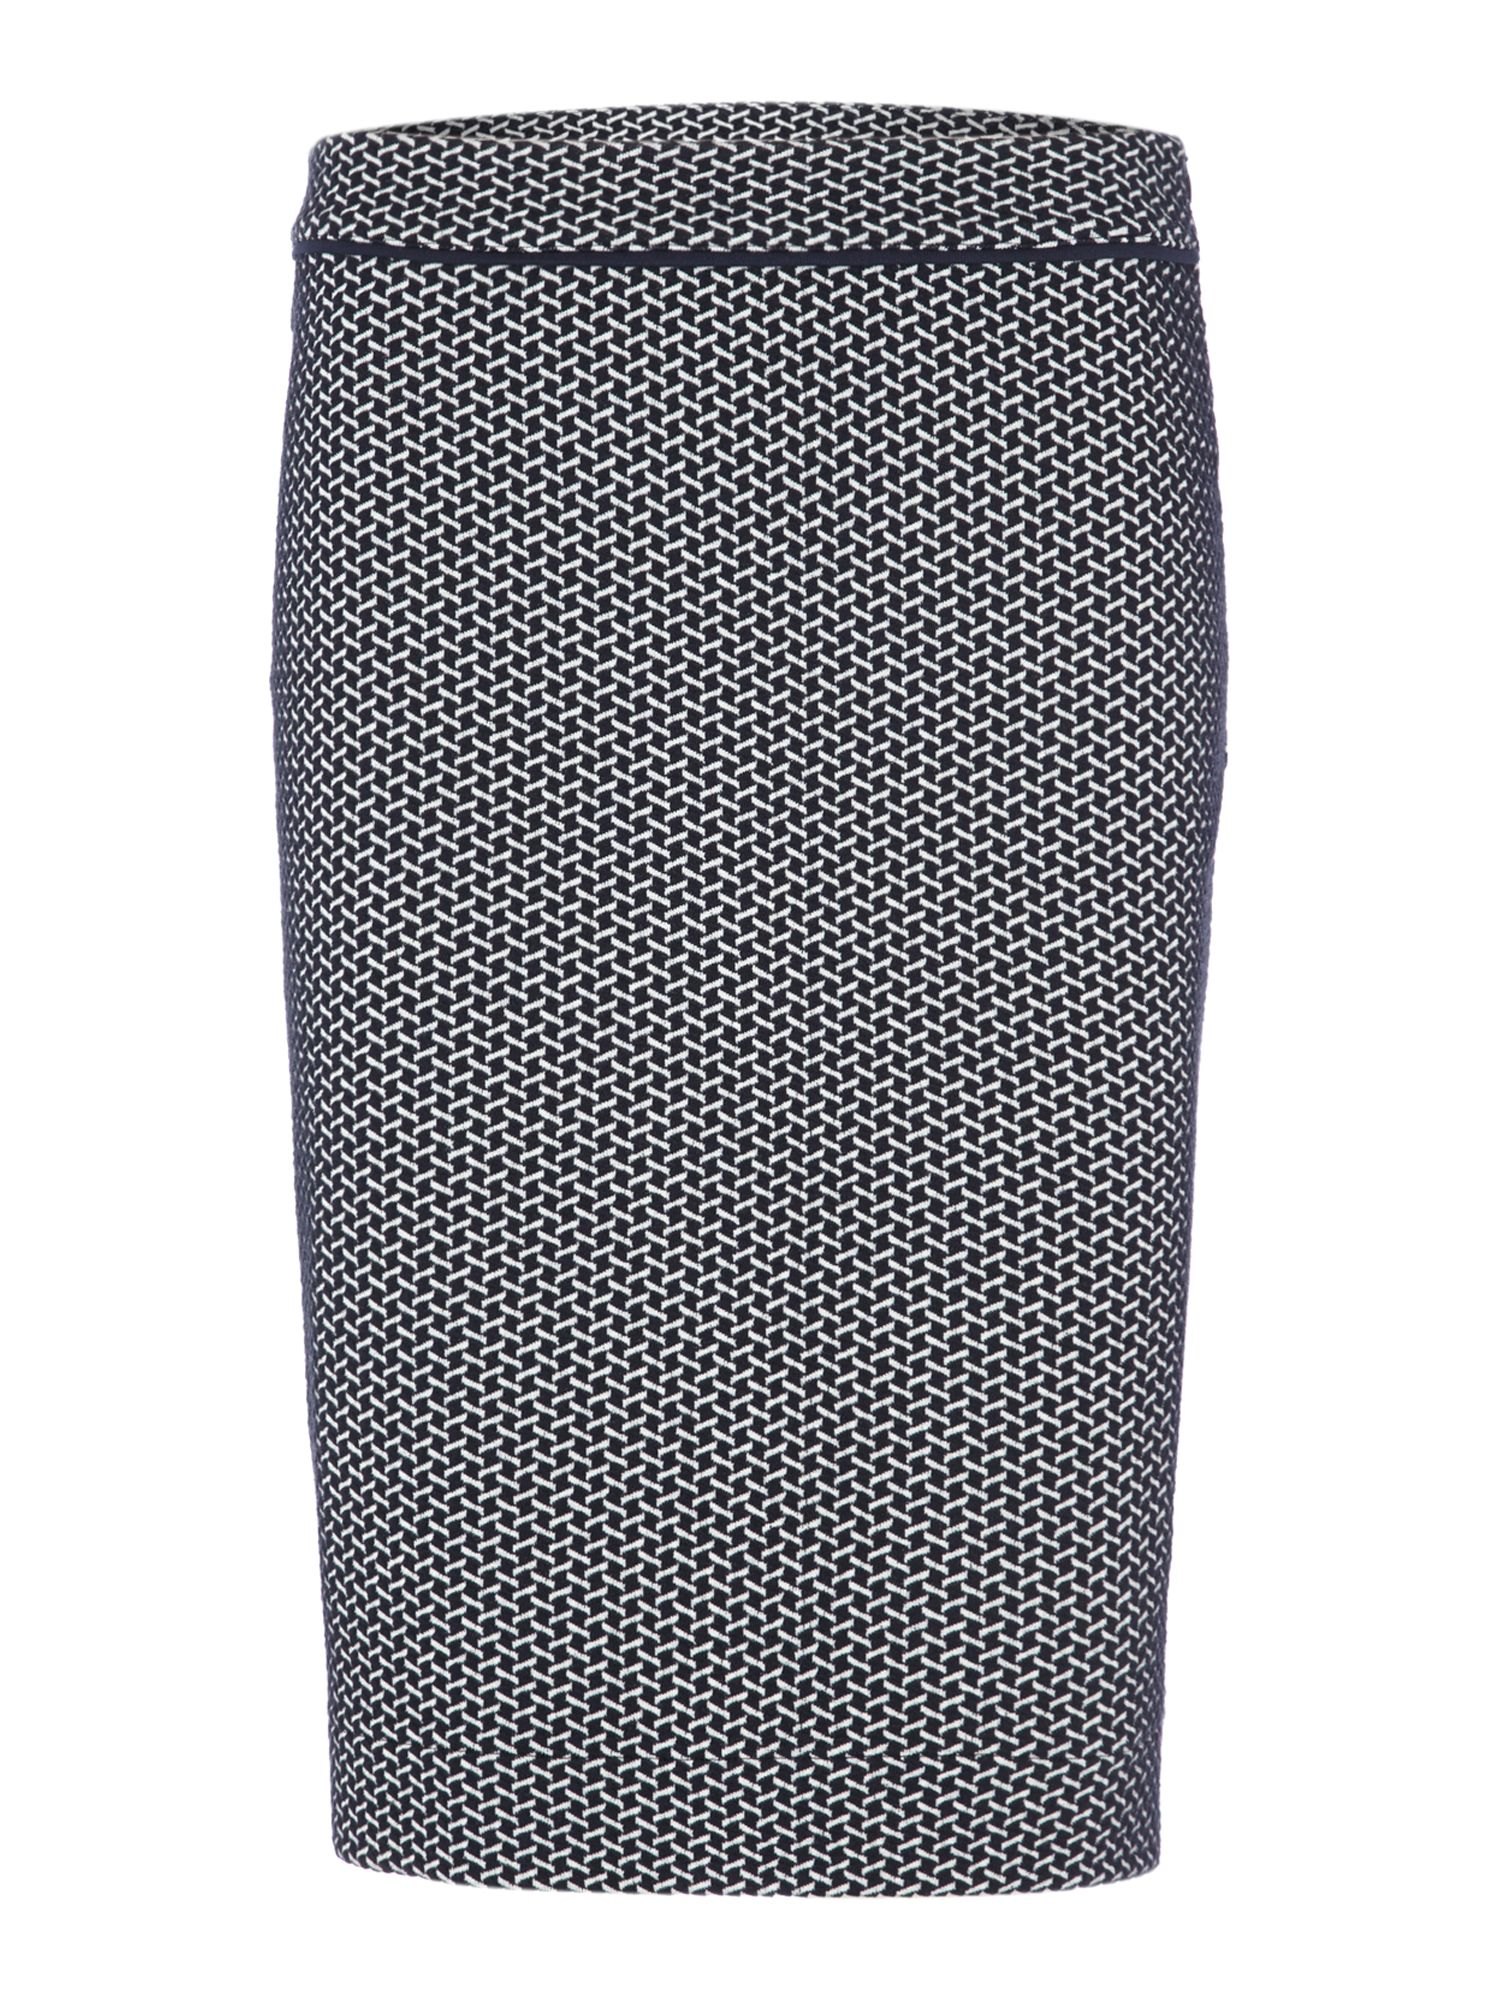 Skirt with jacquard print